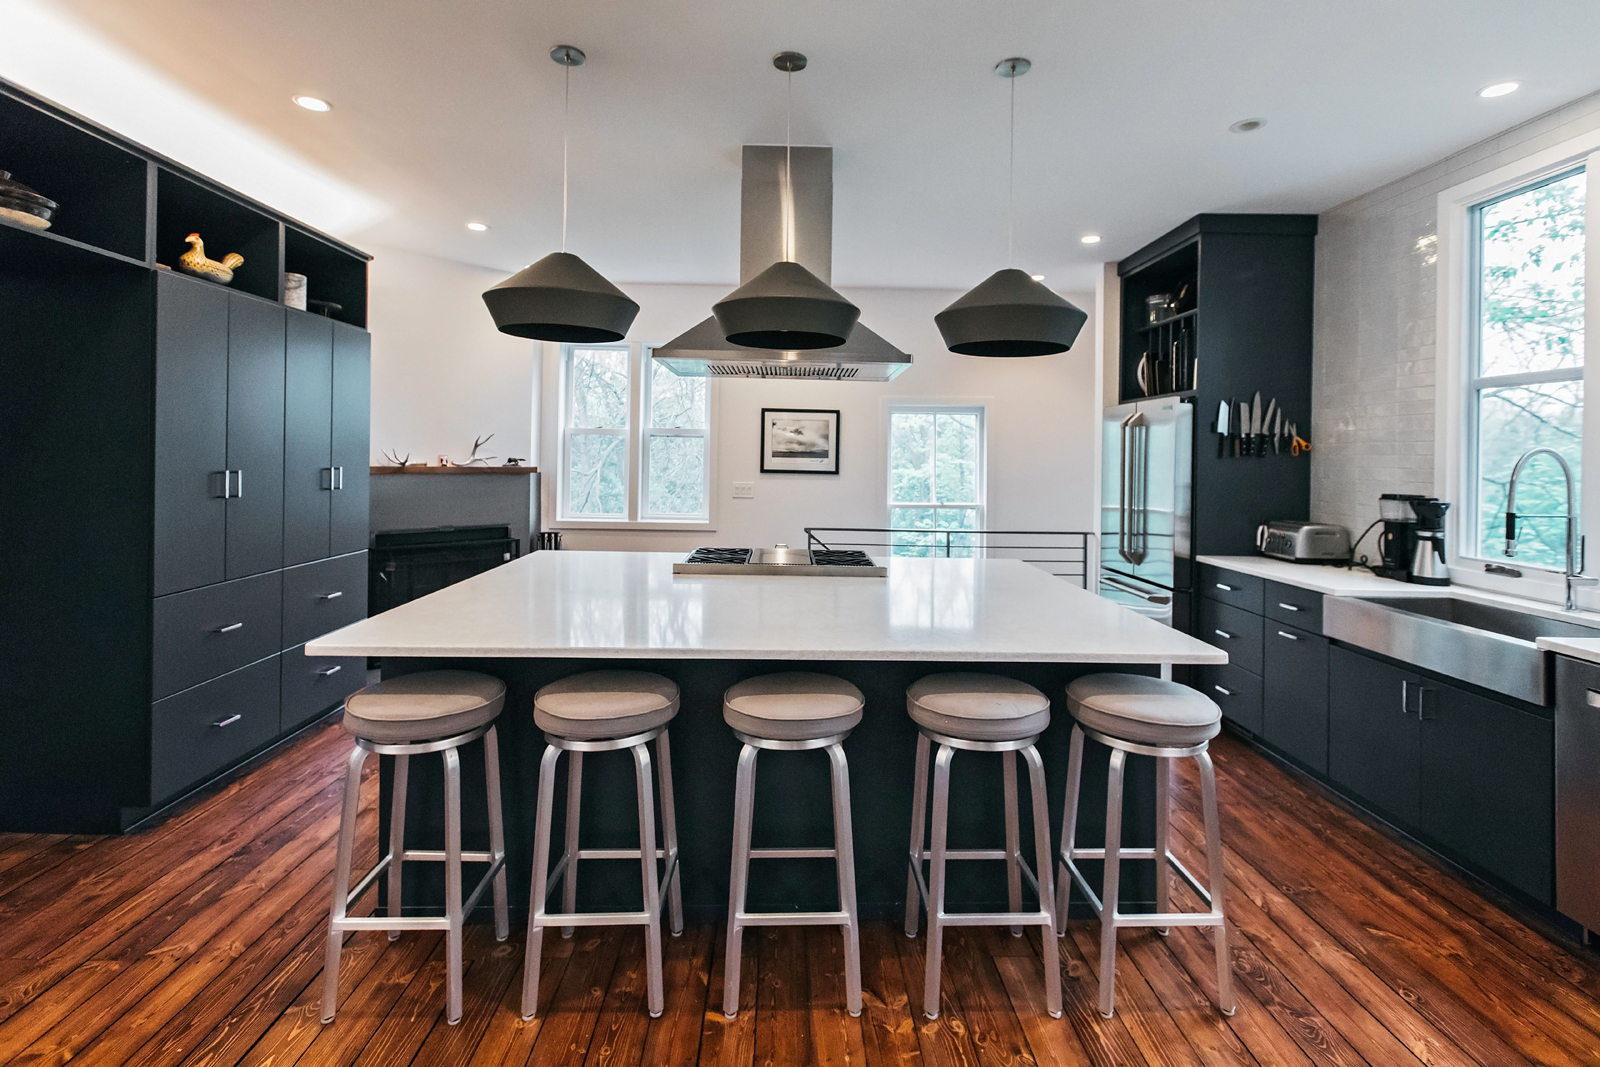 5.15.18 - Oliver Architecture - Chagrin Falls Residence Remodel-10_optimized.jpg